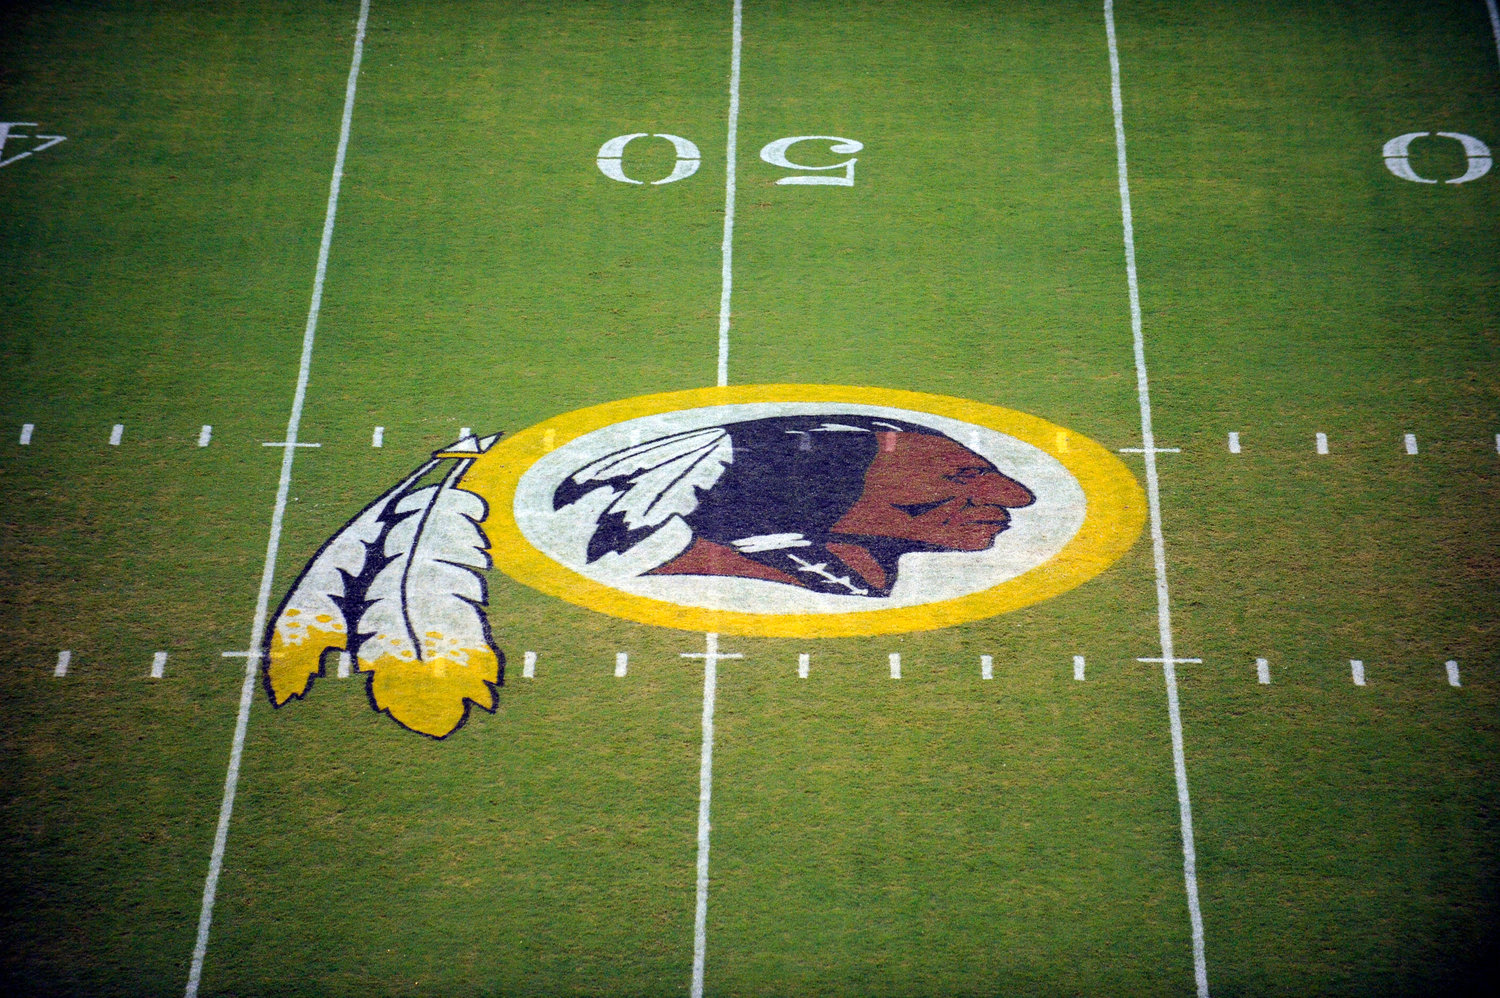 "In this Aug. 28, 2009 file photo, the Washington Redskins logo is shown on the field before the start of a preseason NFL football game against the New England Patriots in Landover, Md. The Washington Redskins are undergoing what the team calls a ""thorough review"" of the nickname. In a statement released Friday, July 3, 2020, the team says it has been talking to the NFL for weeks about the subject. Owner Dan Snyder says the process will include input from alumni, sponsors, the league, community and members of the organization. FedEx on Thursday called for the team to change its name, and Nike appeared to remove all Redskins gear from its online store. (AP Photo/Nick Wass, File)"